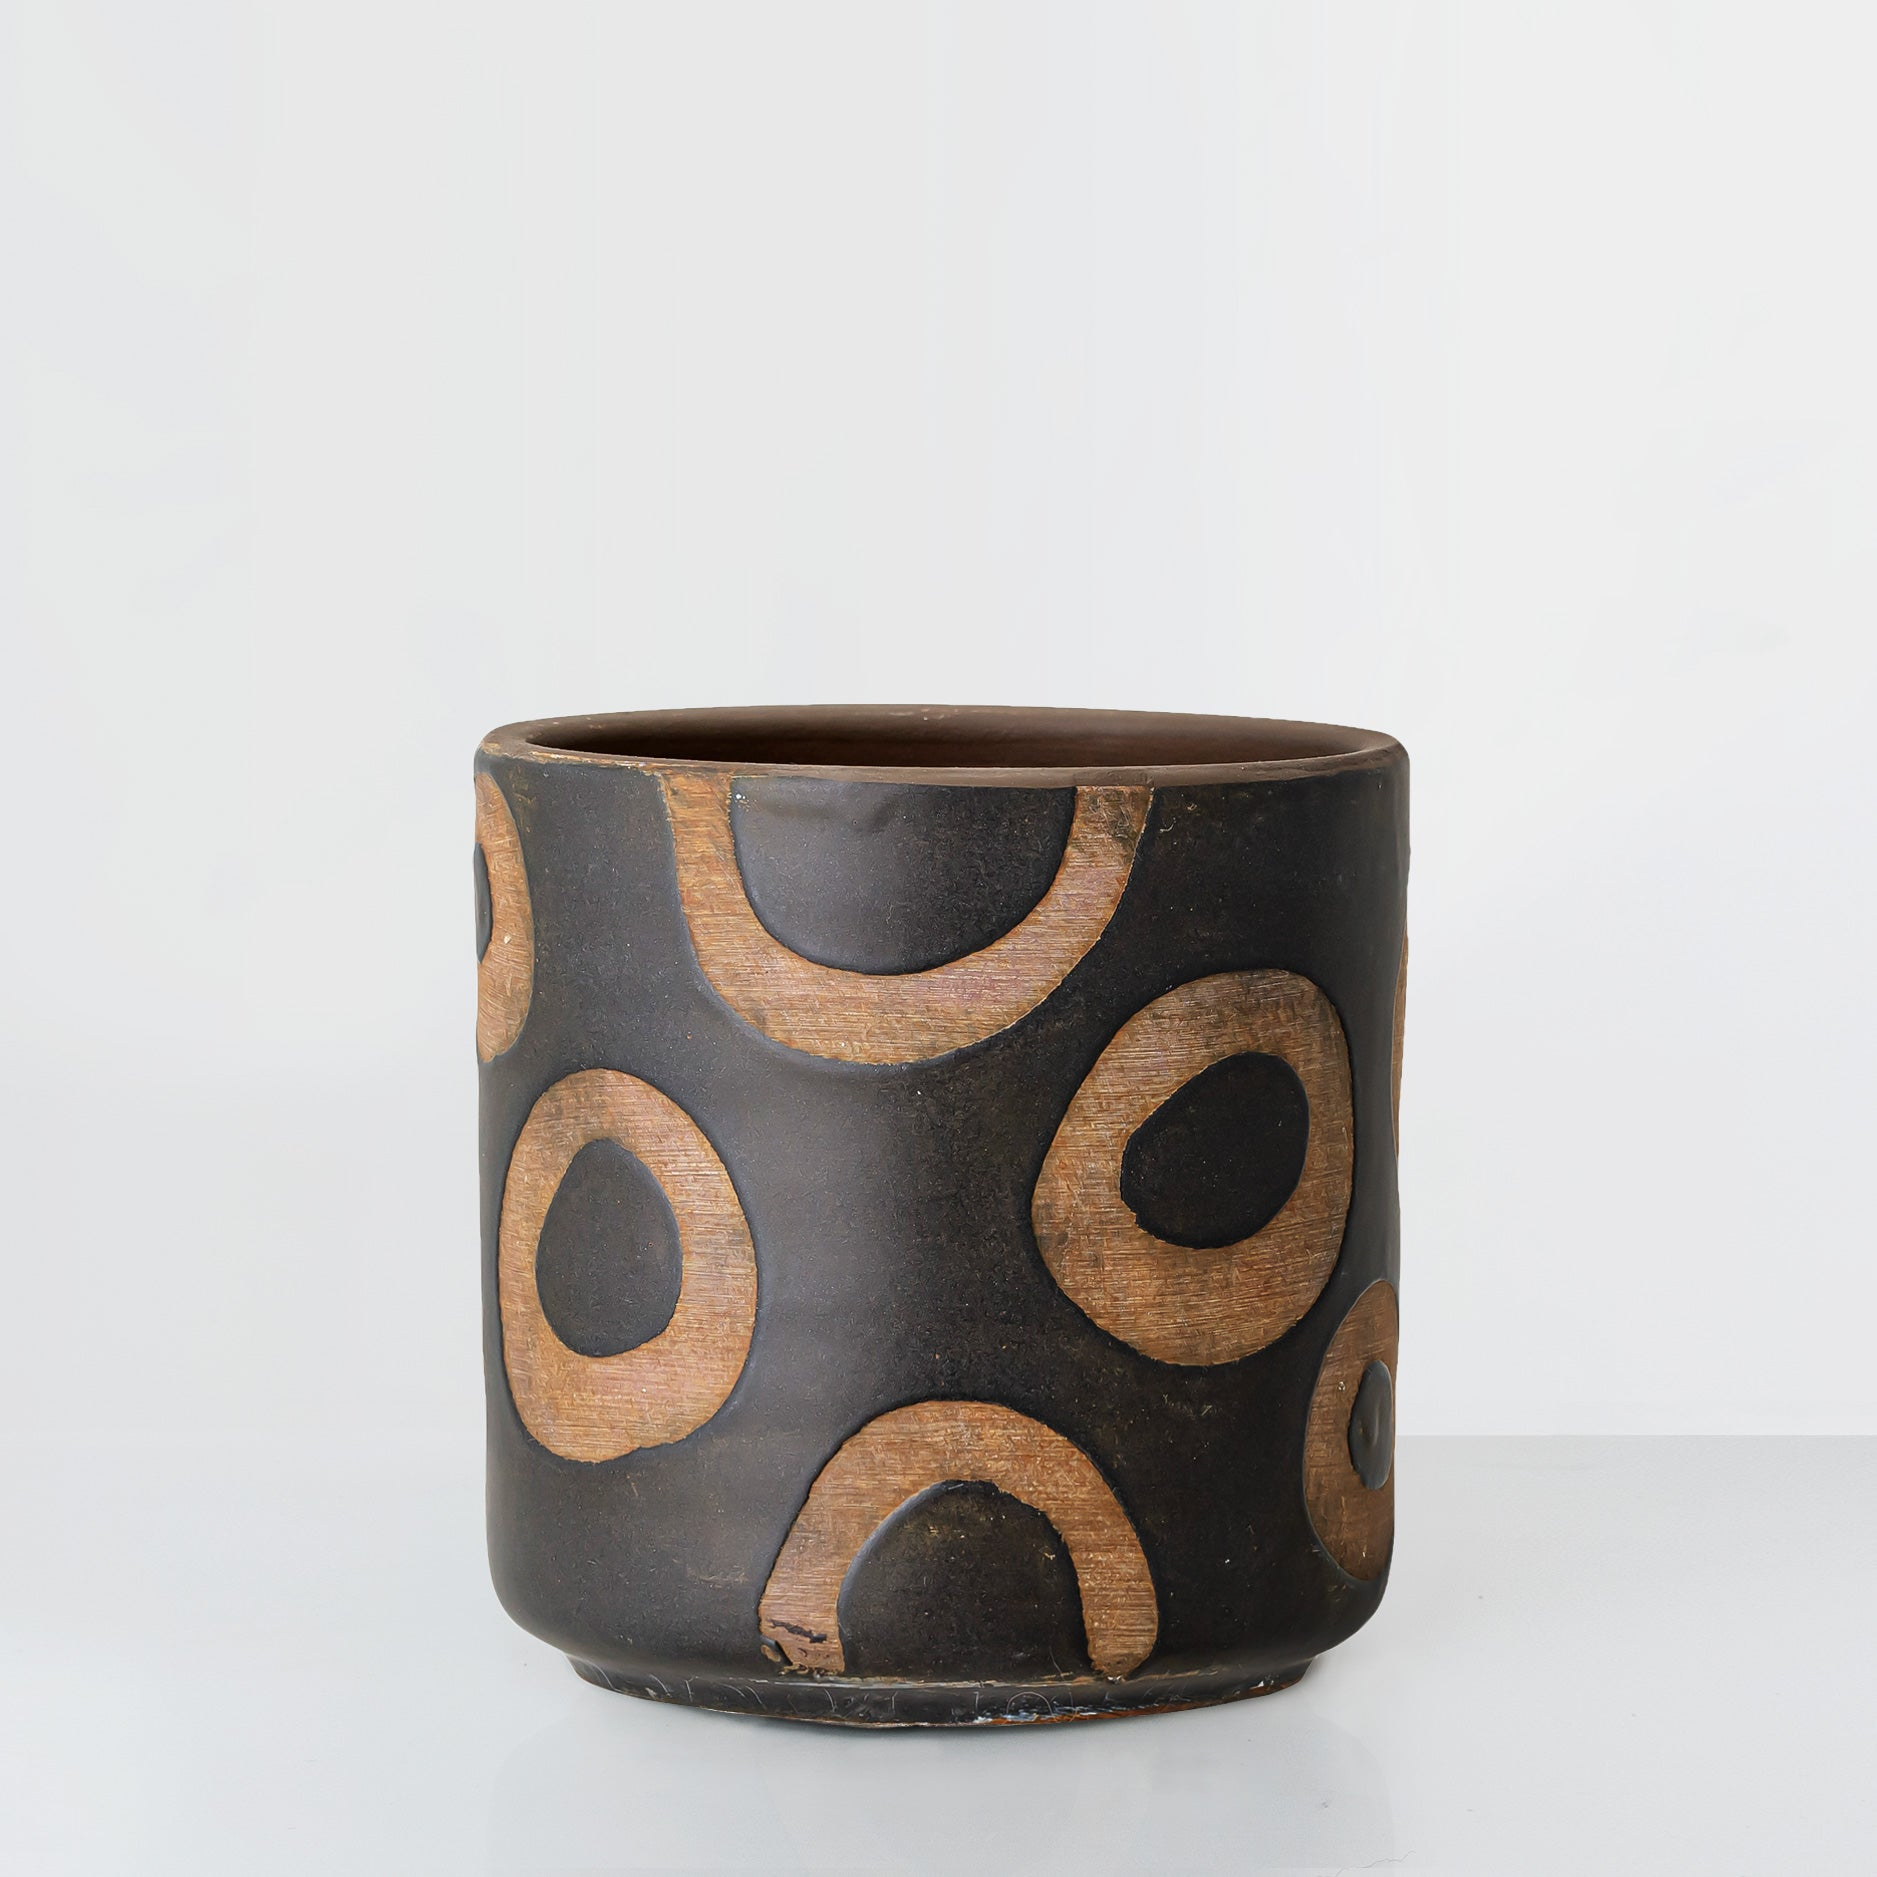 Handcrafted black glaze terracotta plant pot